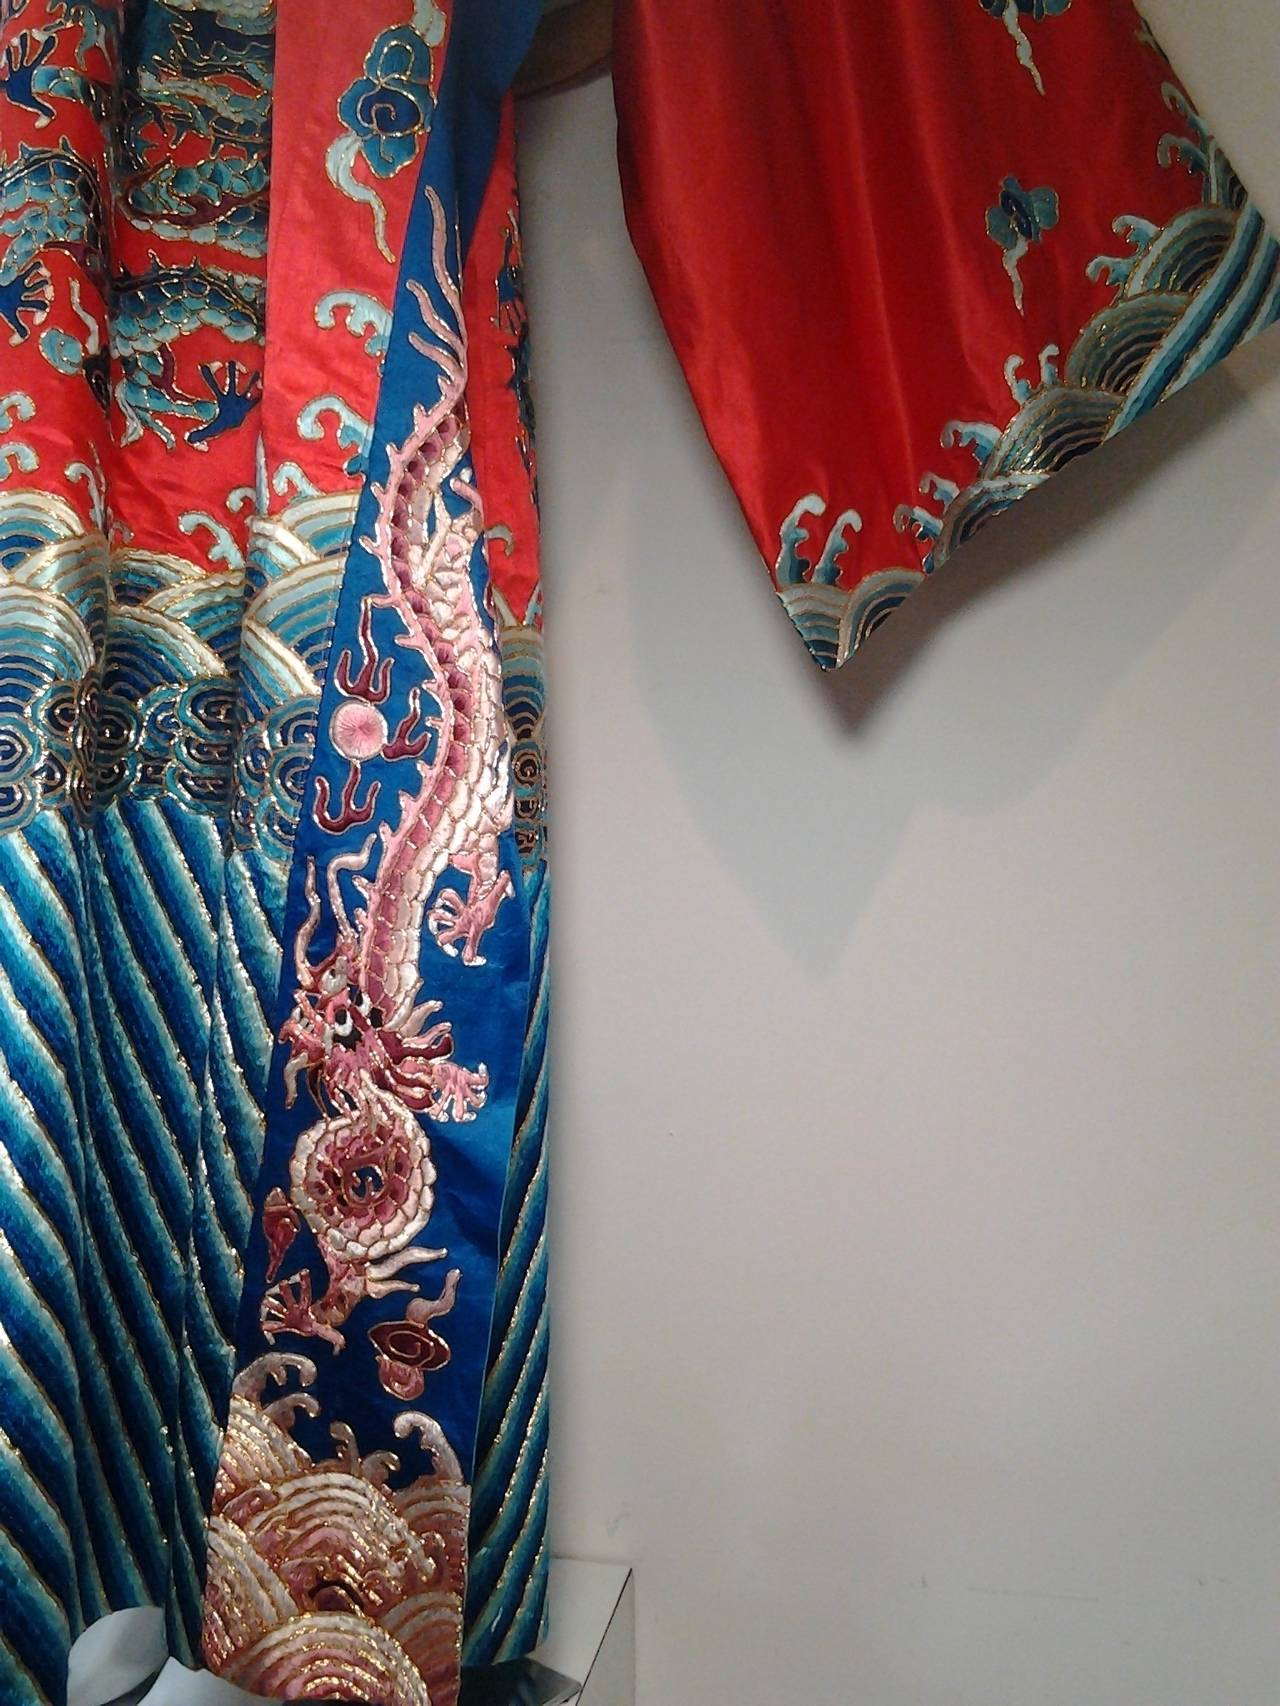 1940s Chinese Red Dragon Robe 3 Pieces 2